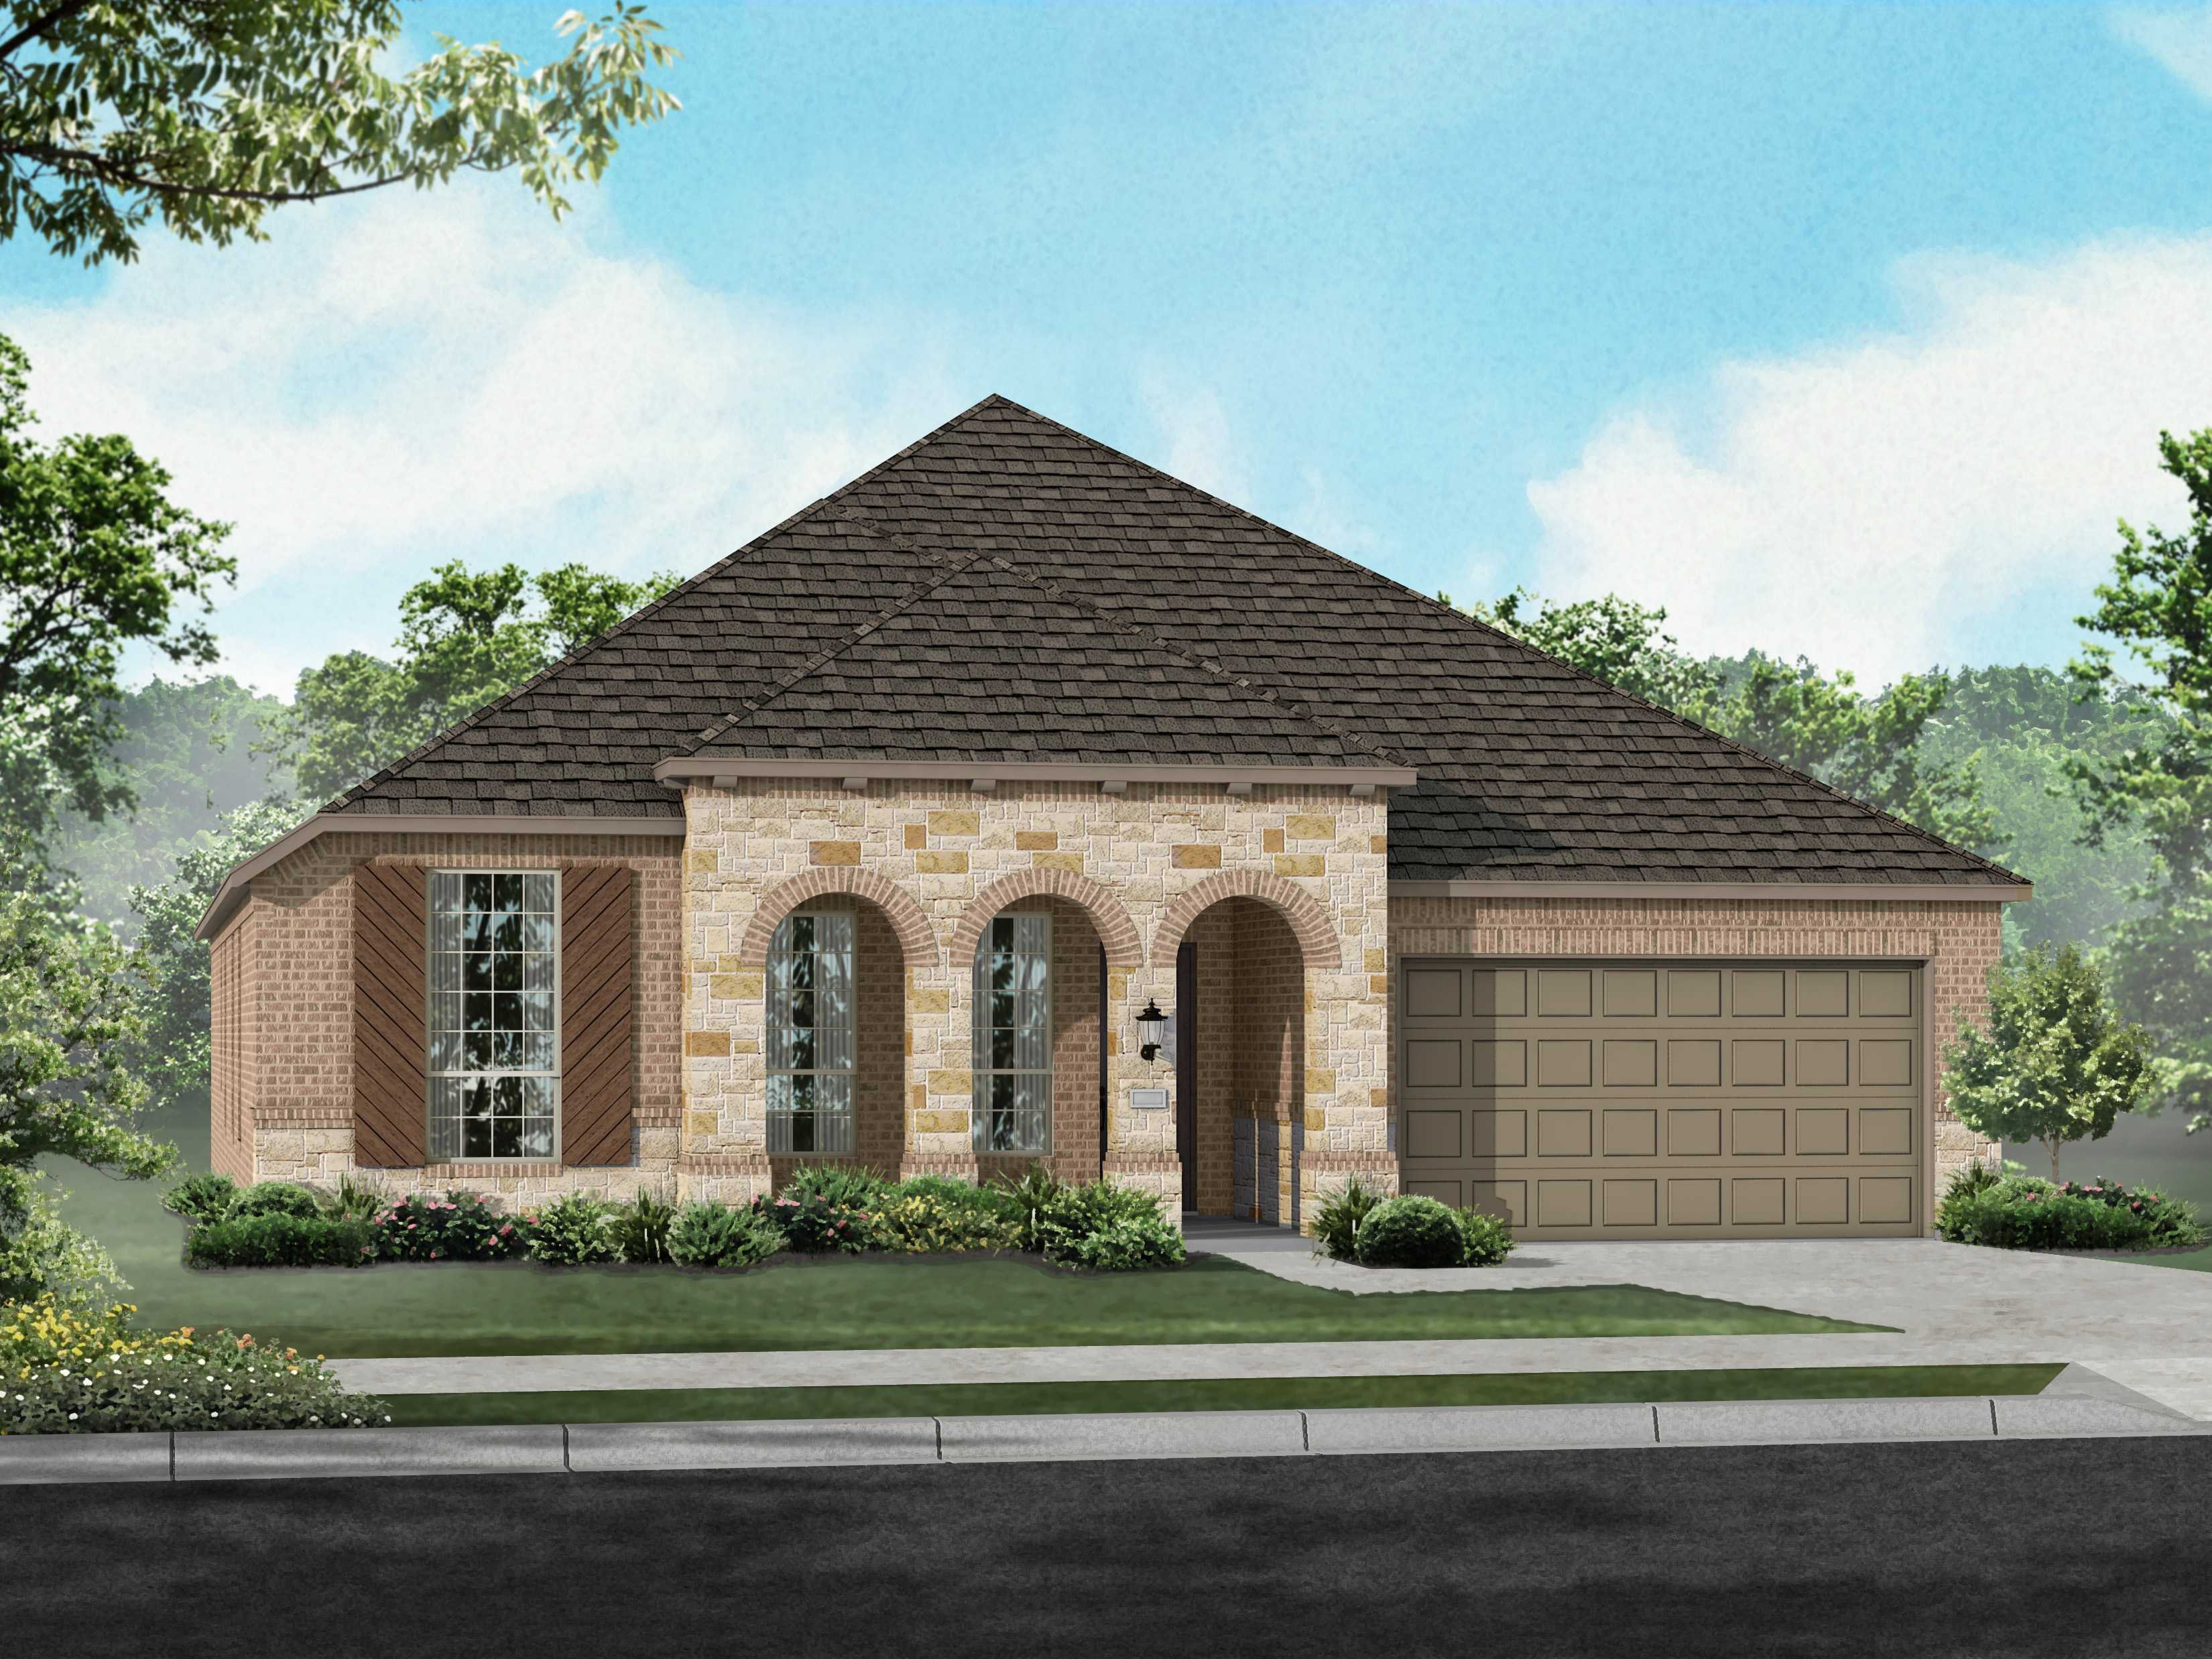 New construction homes plans in dallas tx 12 855 for New home source dfw